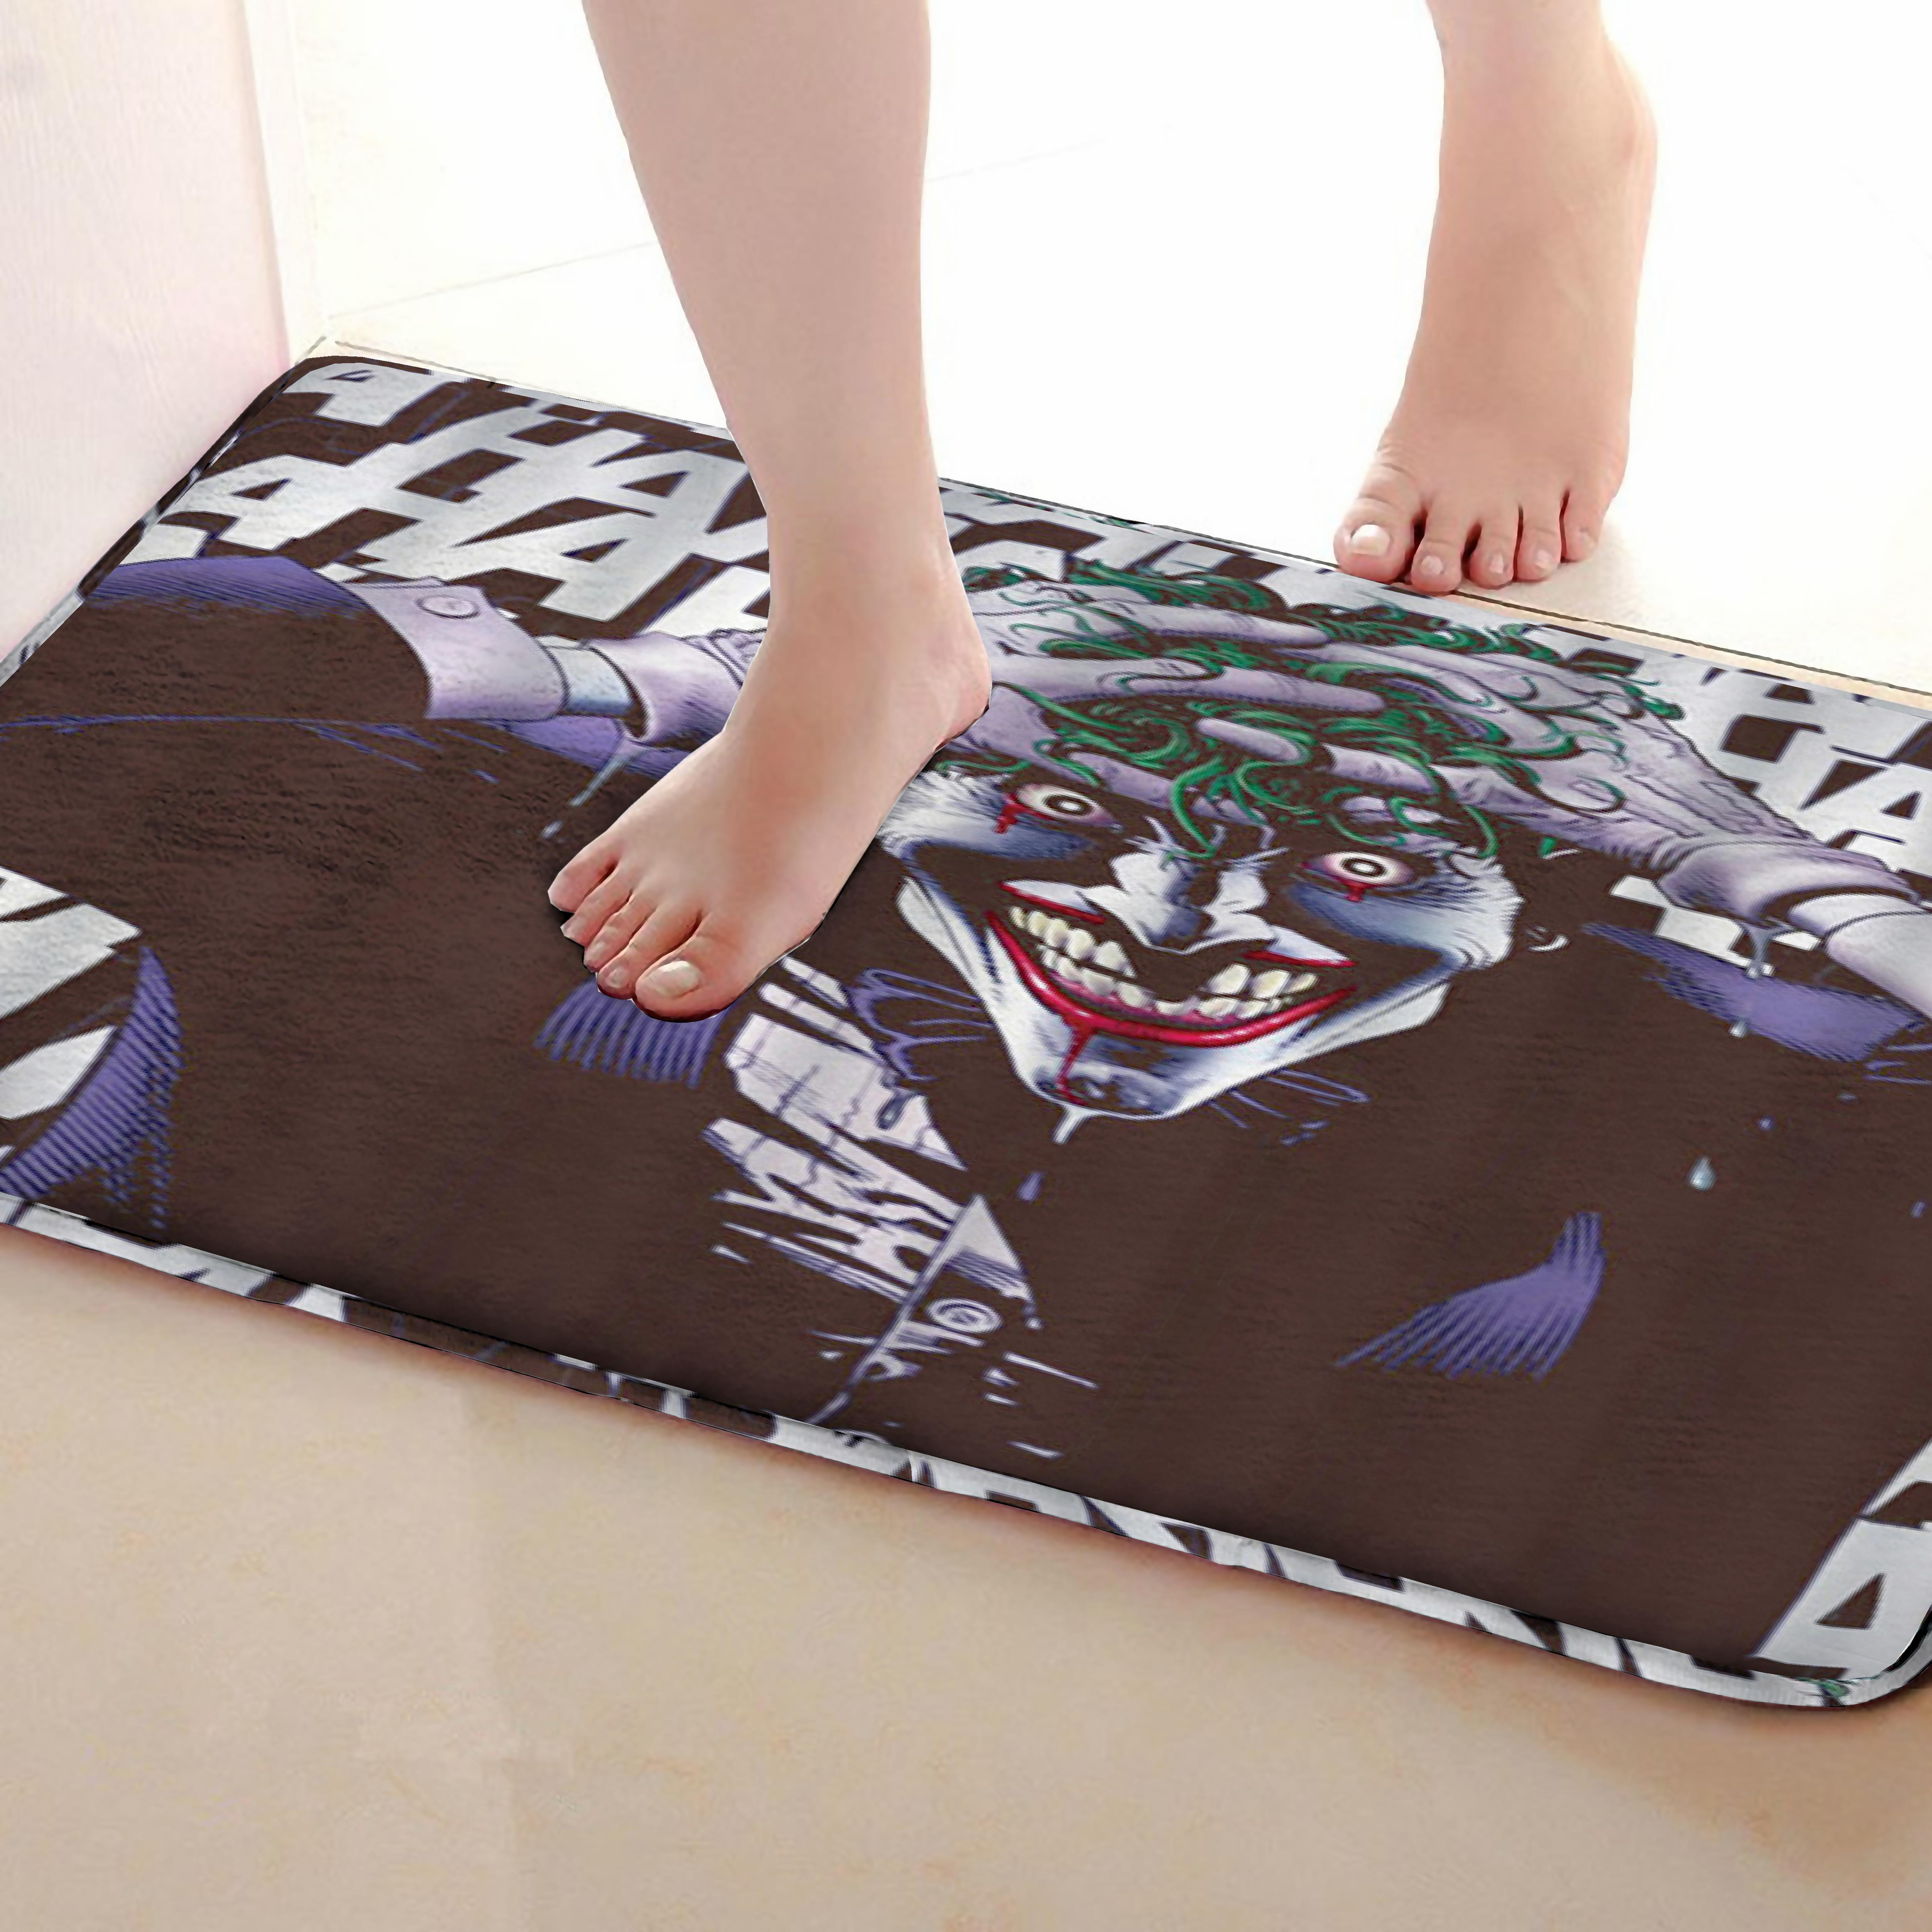 Monster Style Bathroom Mat,Funny Anti Skid Bath Mat,Shower Curtains Accessories,Matching Your Shower Curtain